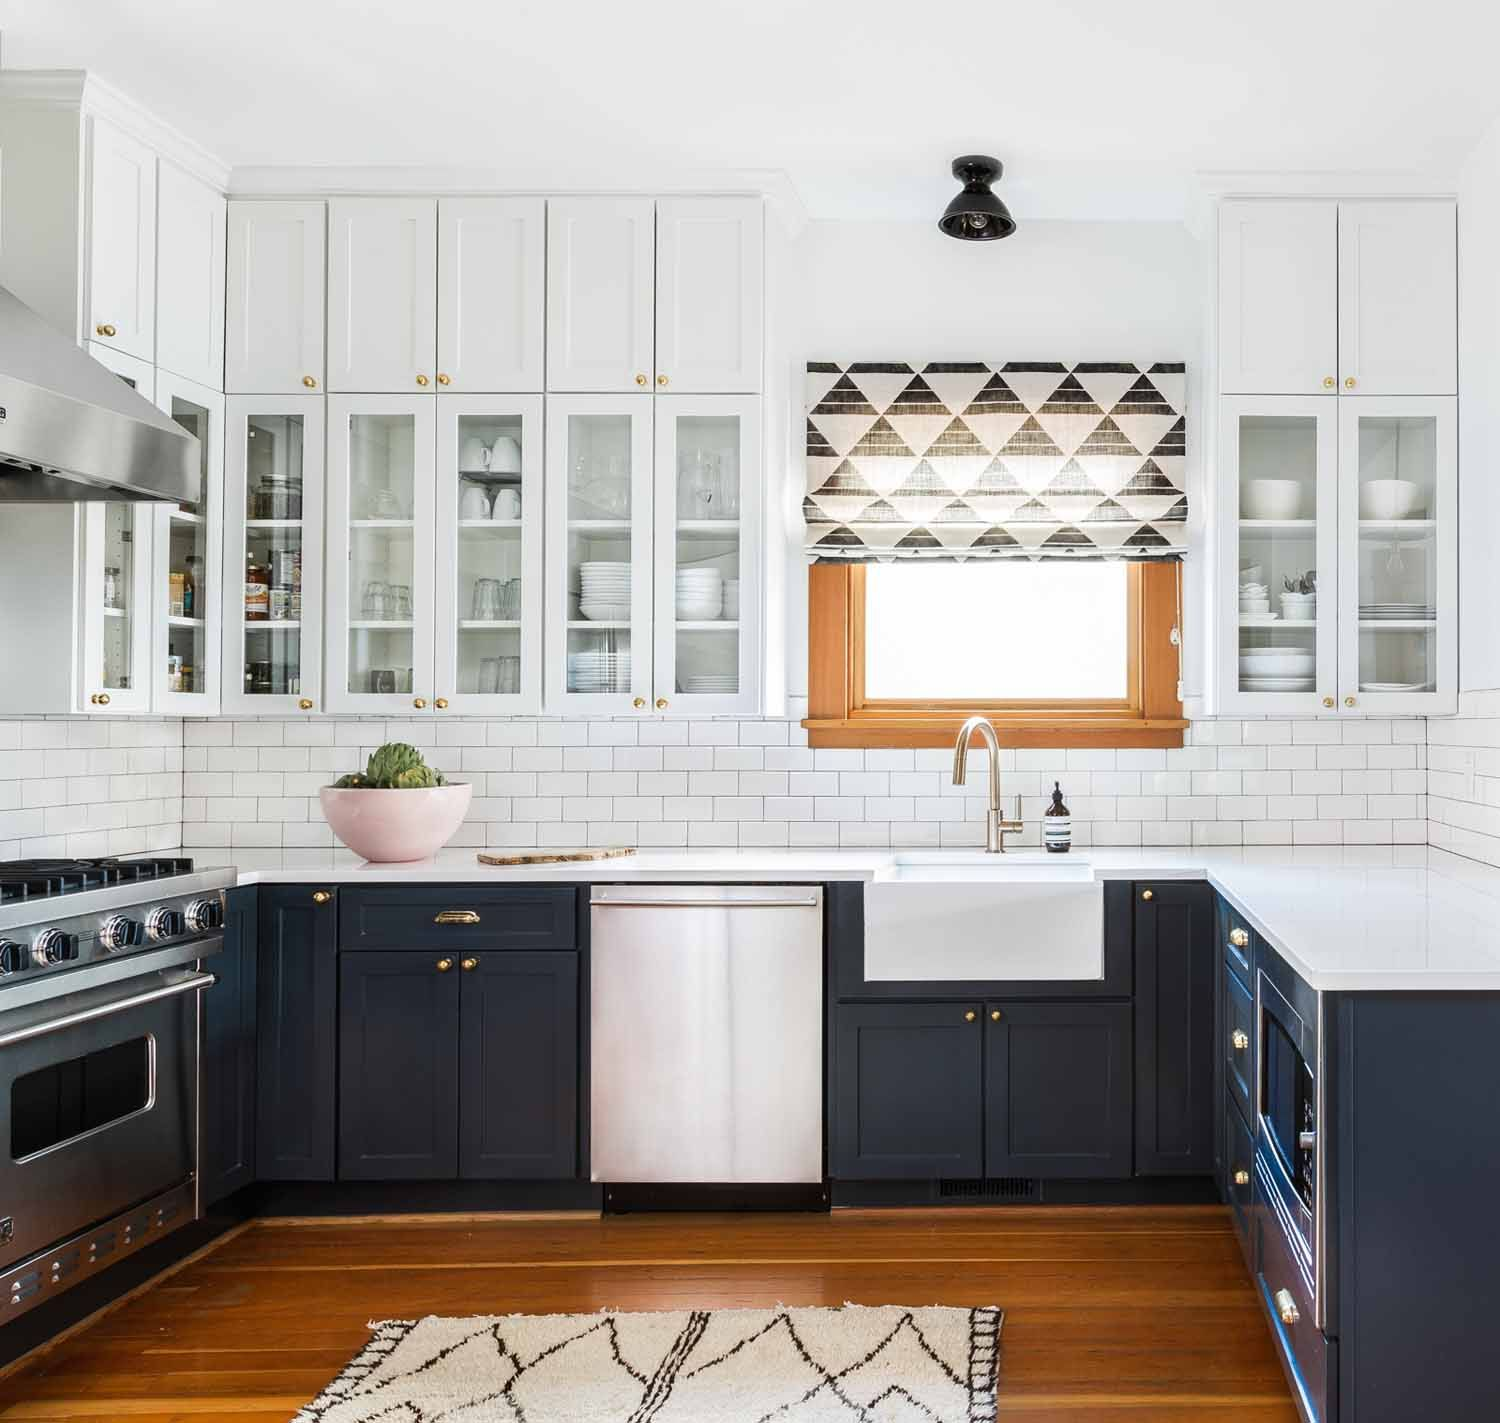 Black Base Cabinets White Upper Cabinets 27 43 Two Tone Kitchen Cabinets Ideas Concept This Is